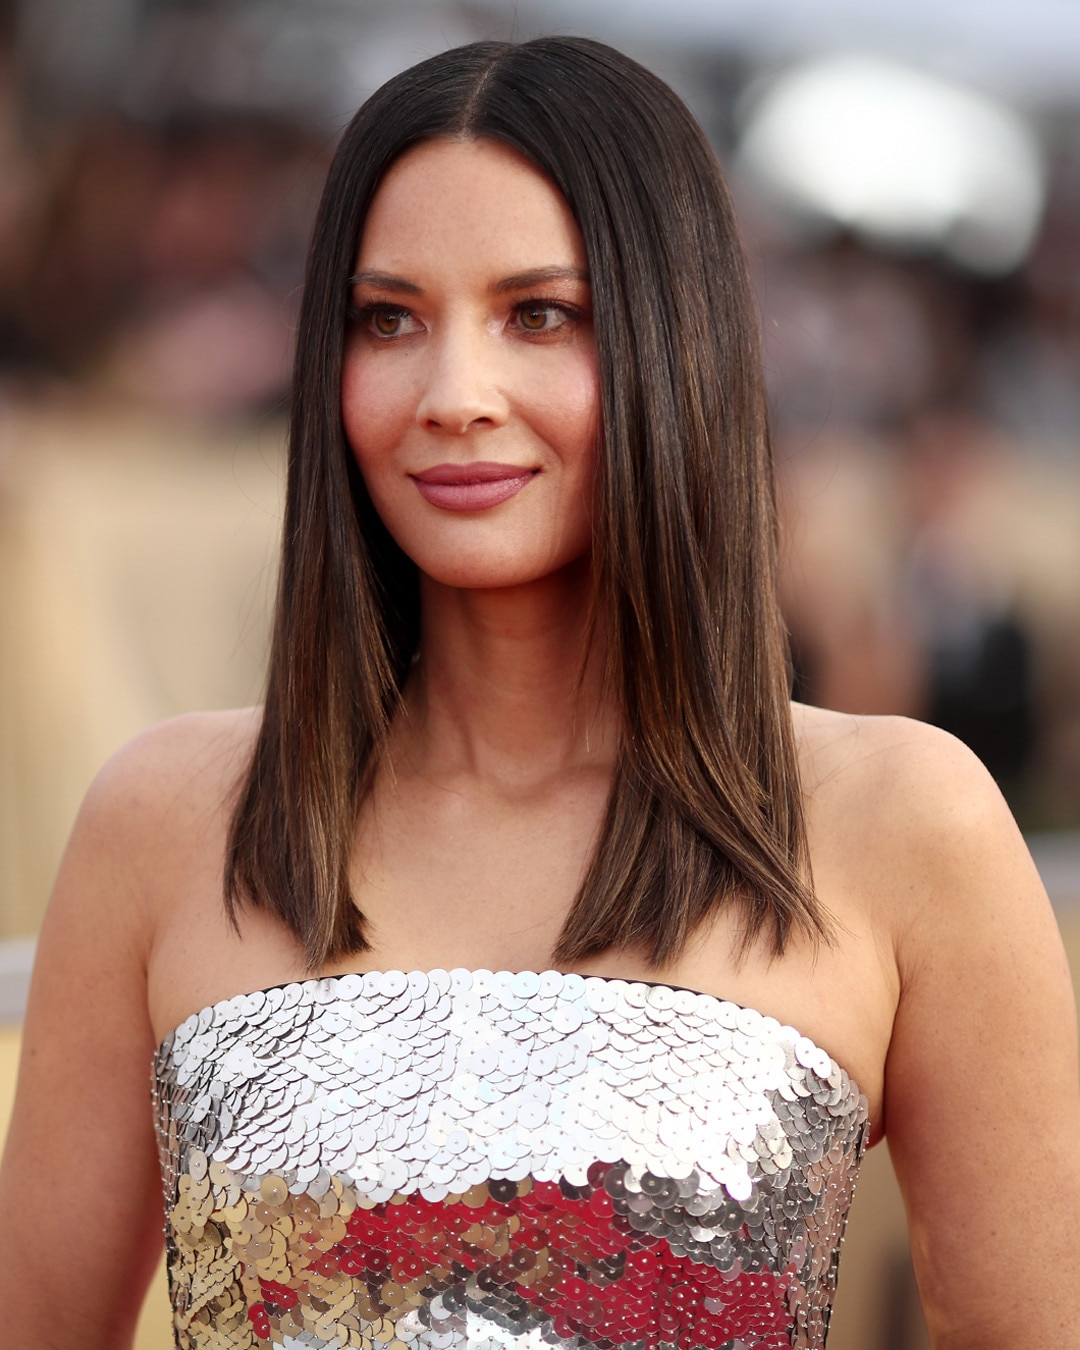 Images Olivia Munn nudes (15 photo), Sexy, Cleavage, Selfie, cleavage 2020